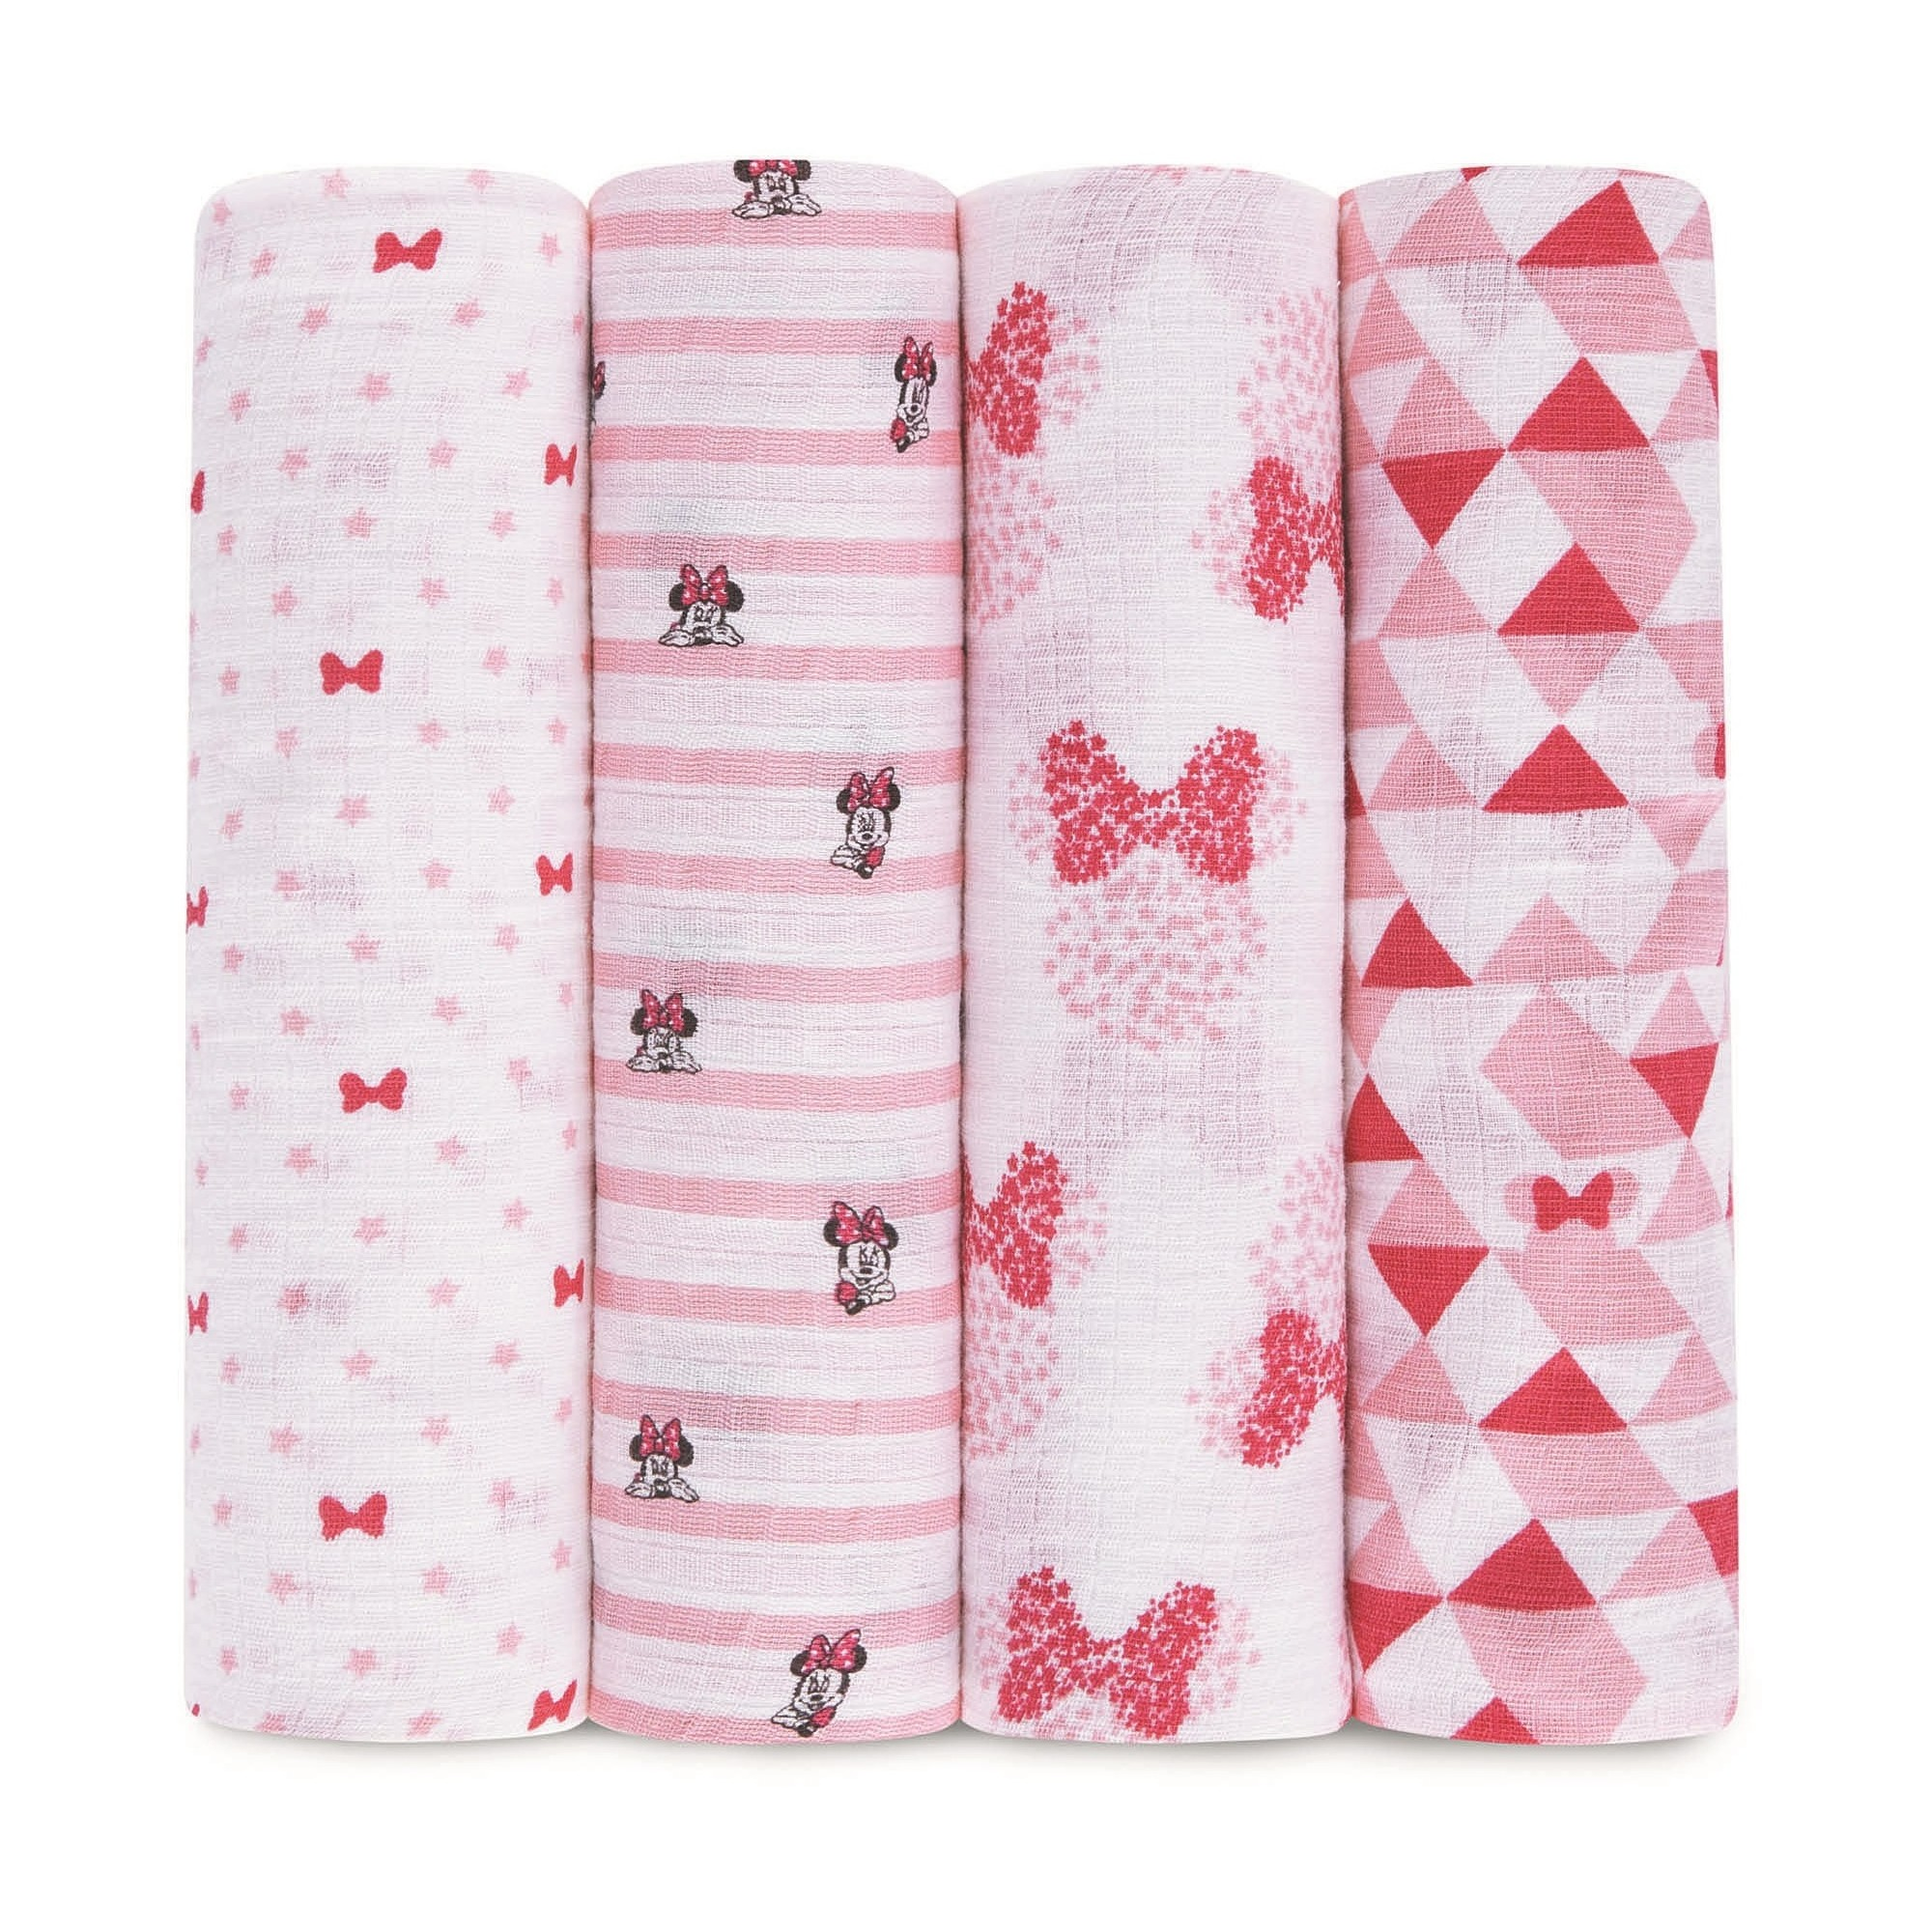 09b3bc2c846b Aden by Aden + Anais Muslin Swaddle - 4pk - Disney - Minnie